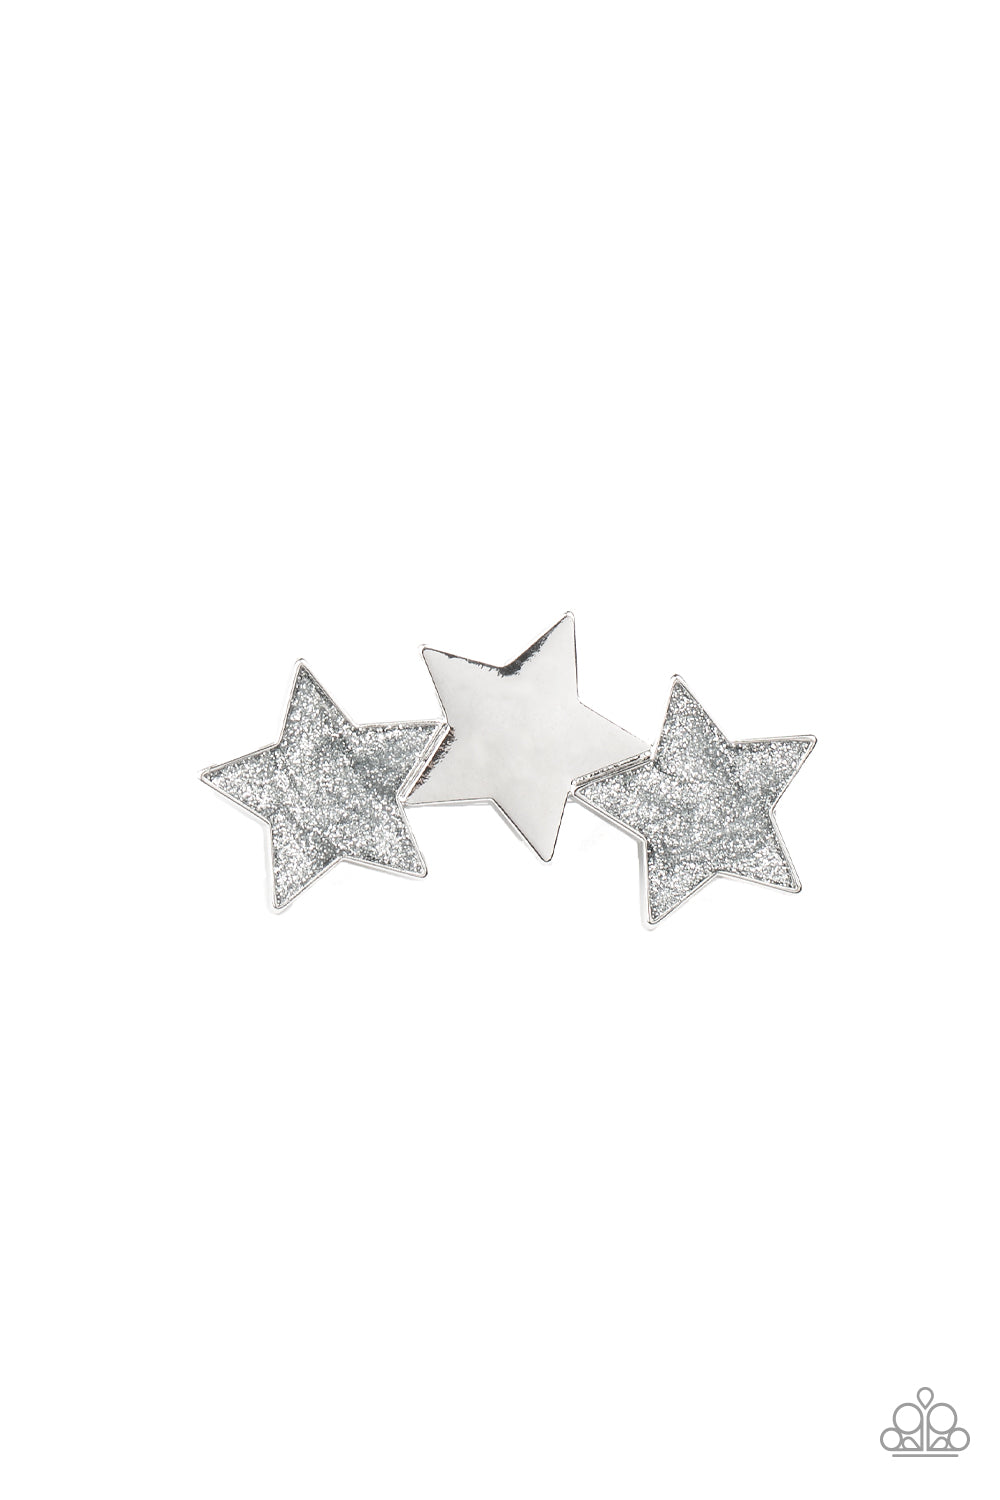 Dont Get Me STAR-ted Silver Hair Clip